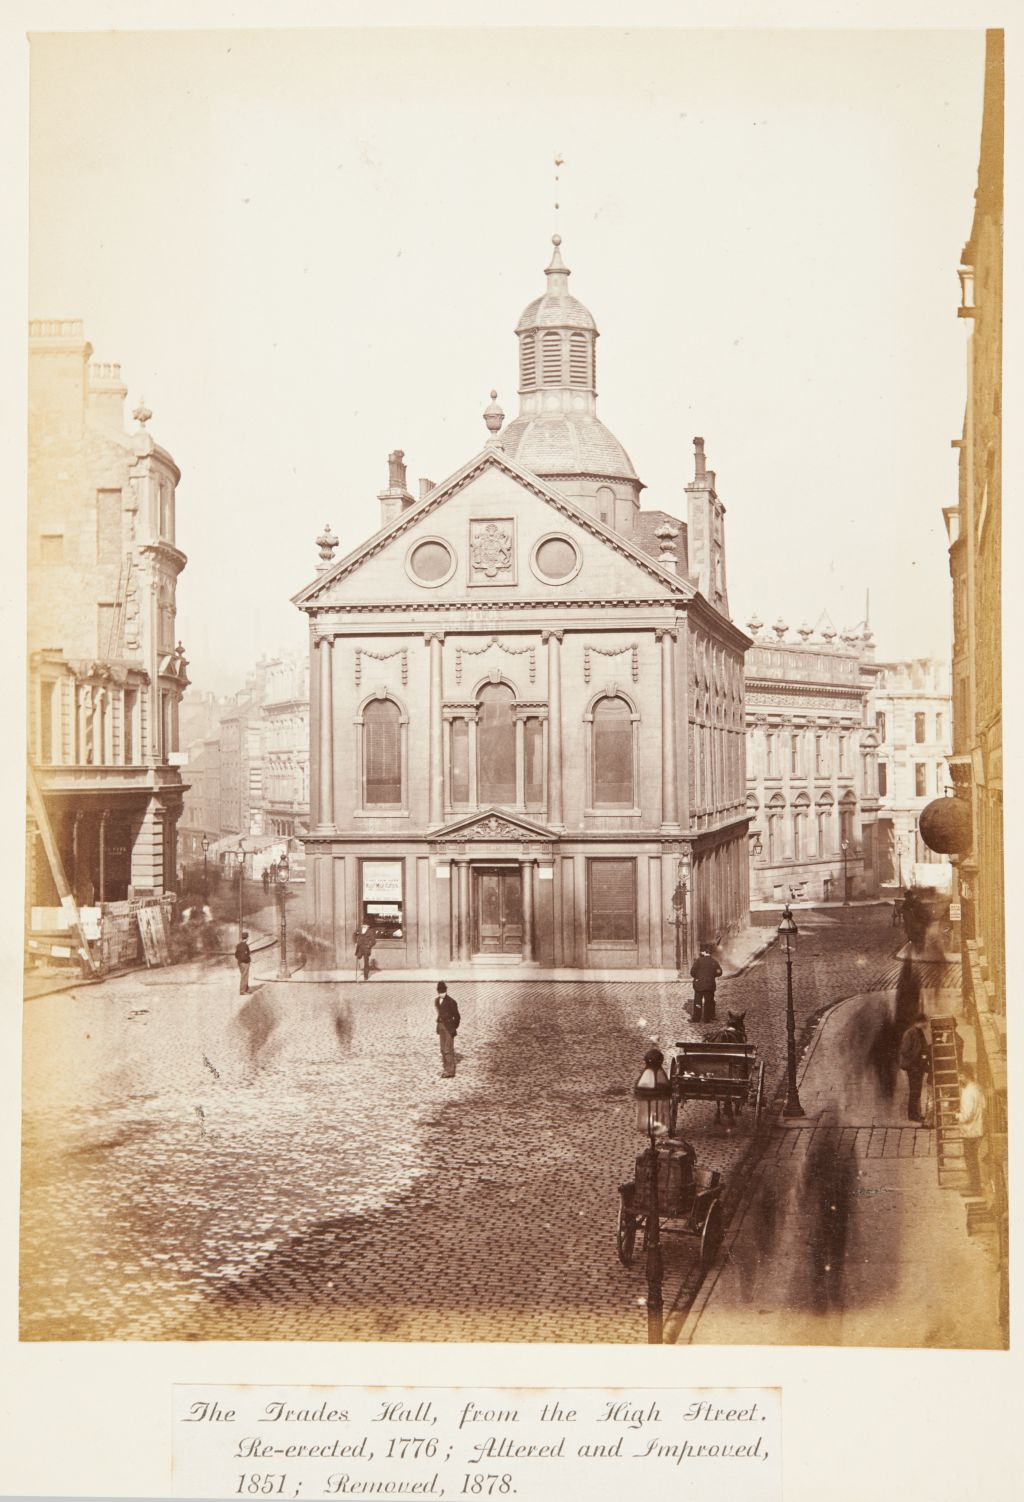 The Trades Hall, from the High Street [Dundee]. Re-erected, 1776; Altered and Improved, 1851; Removed, 1878.